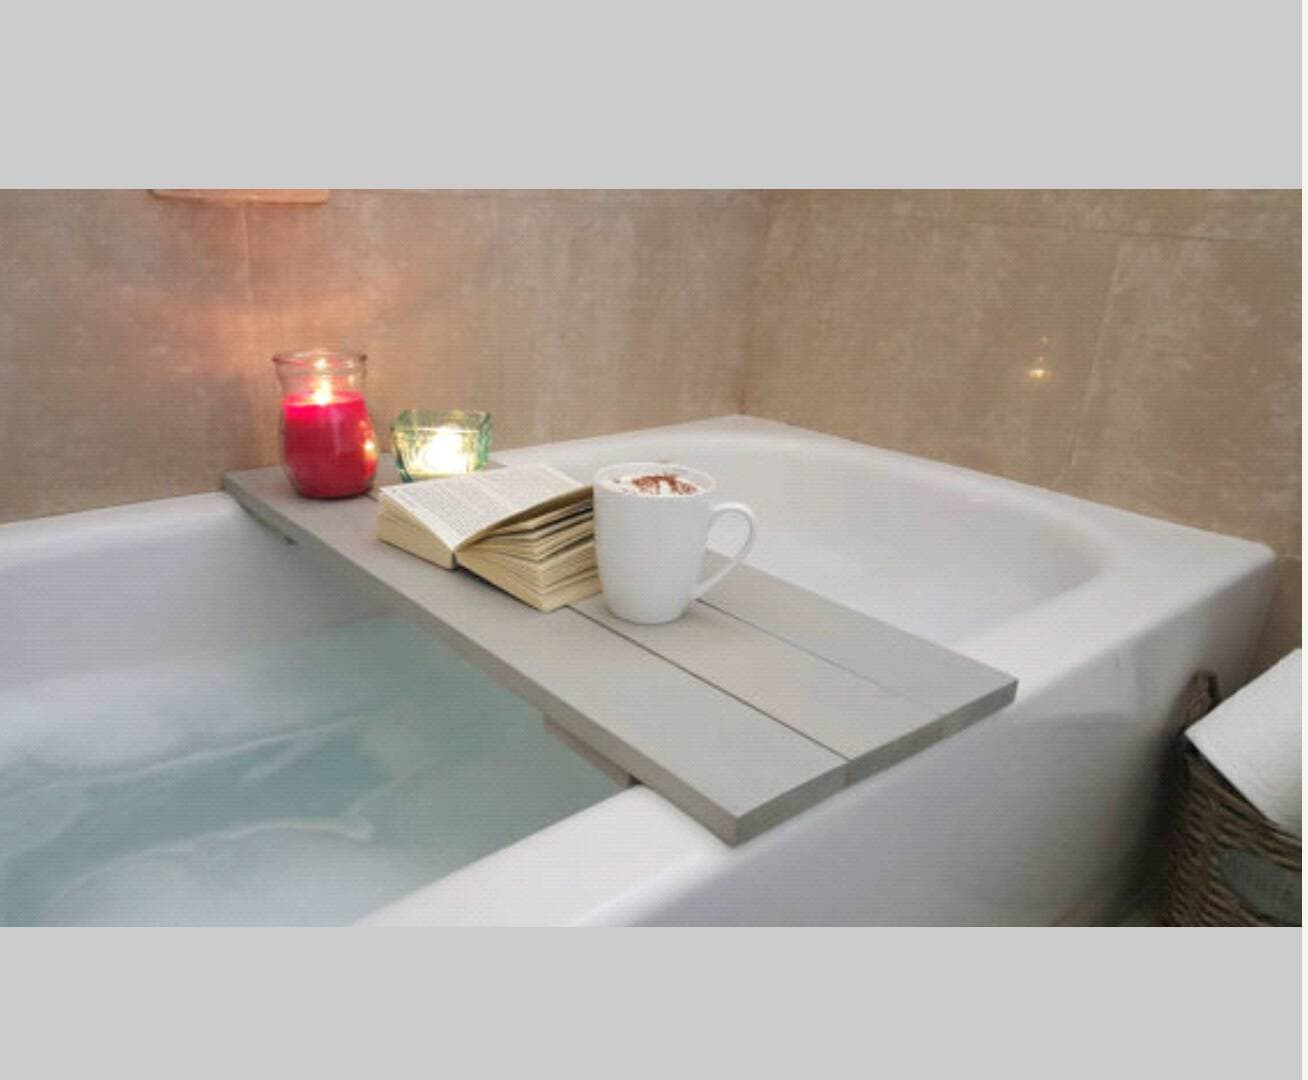 Bath caddy bathtub tray bath tray bath shelf for Bathroom tray